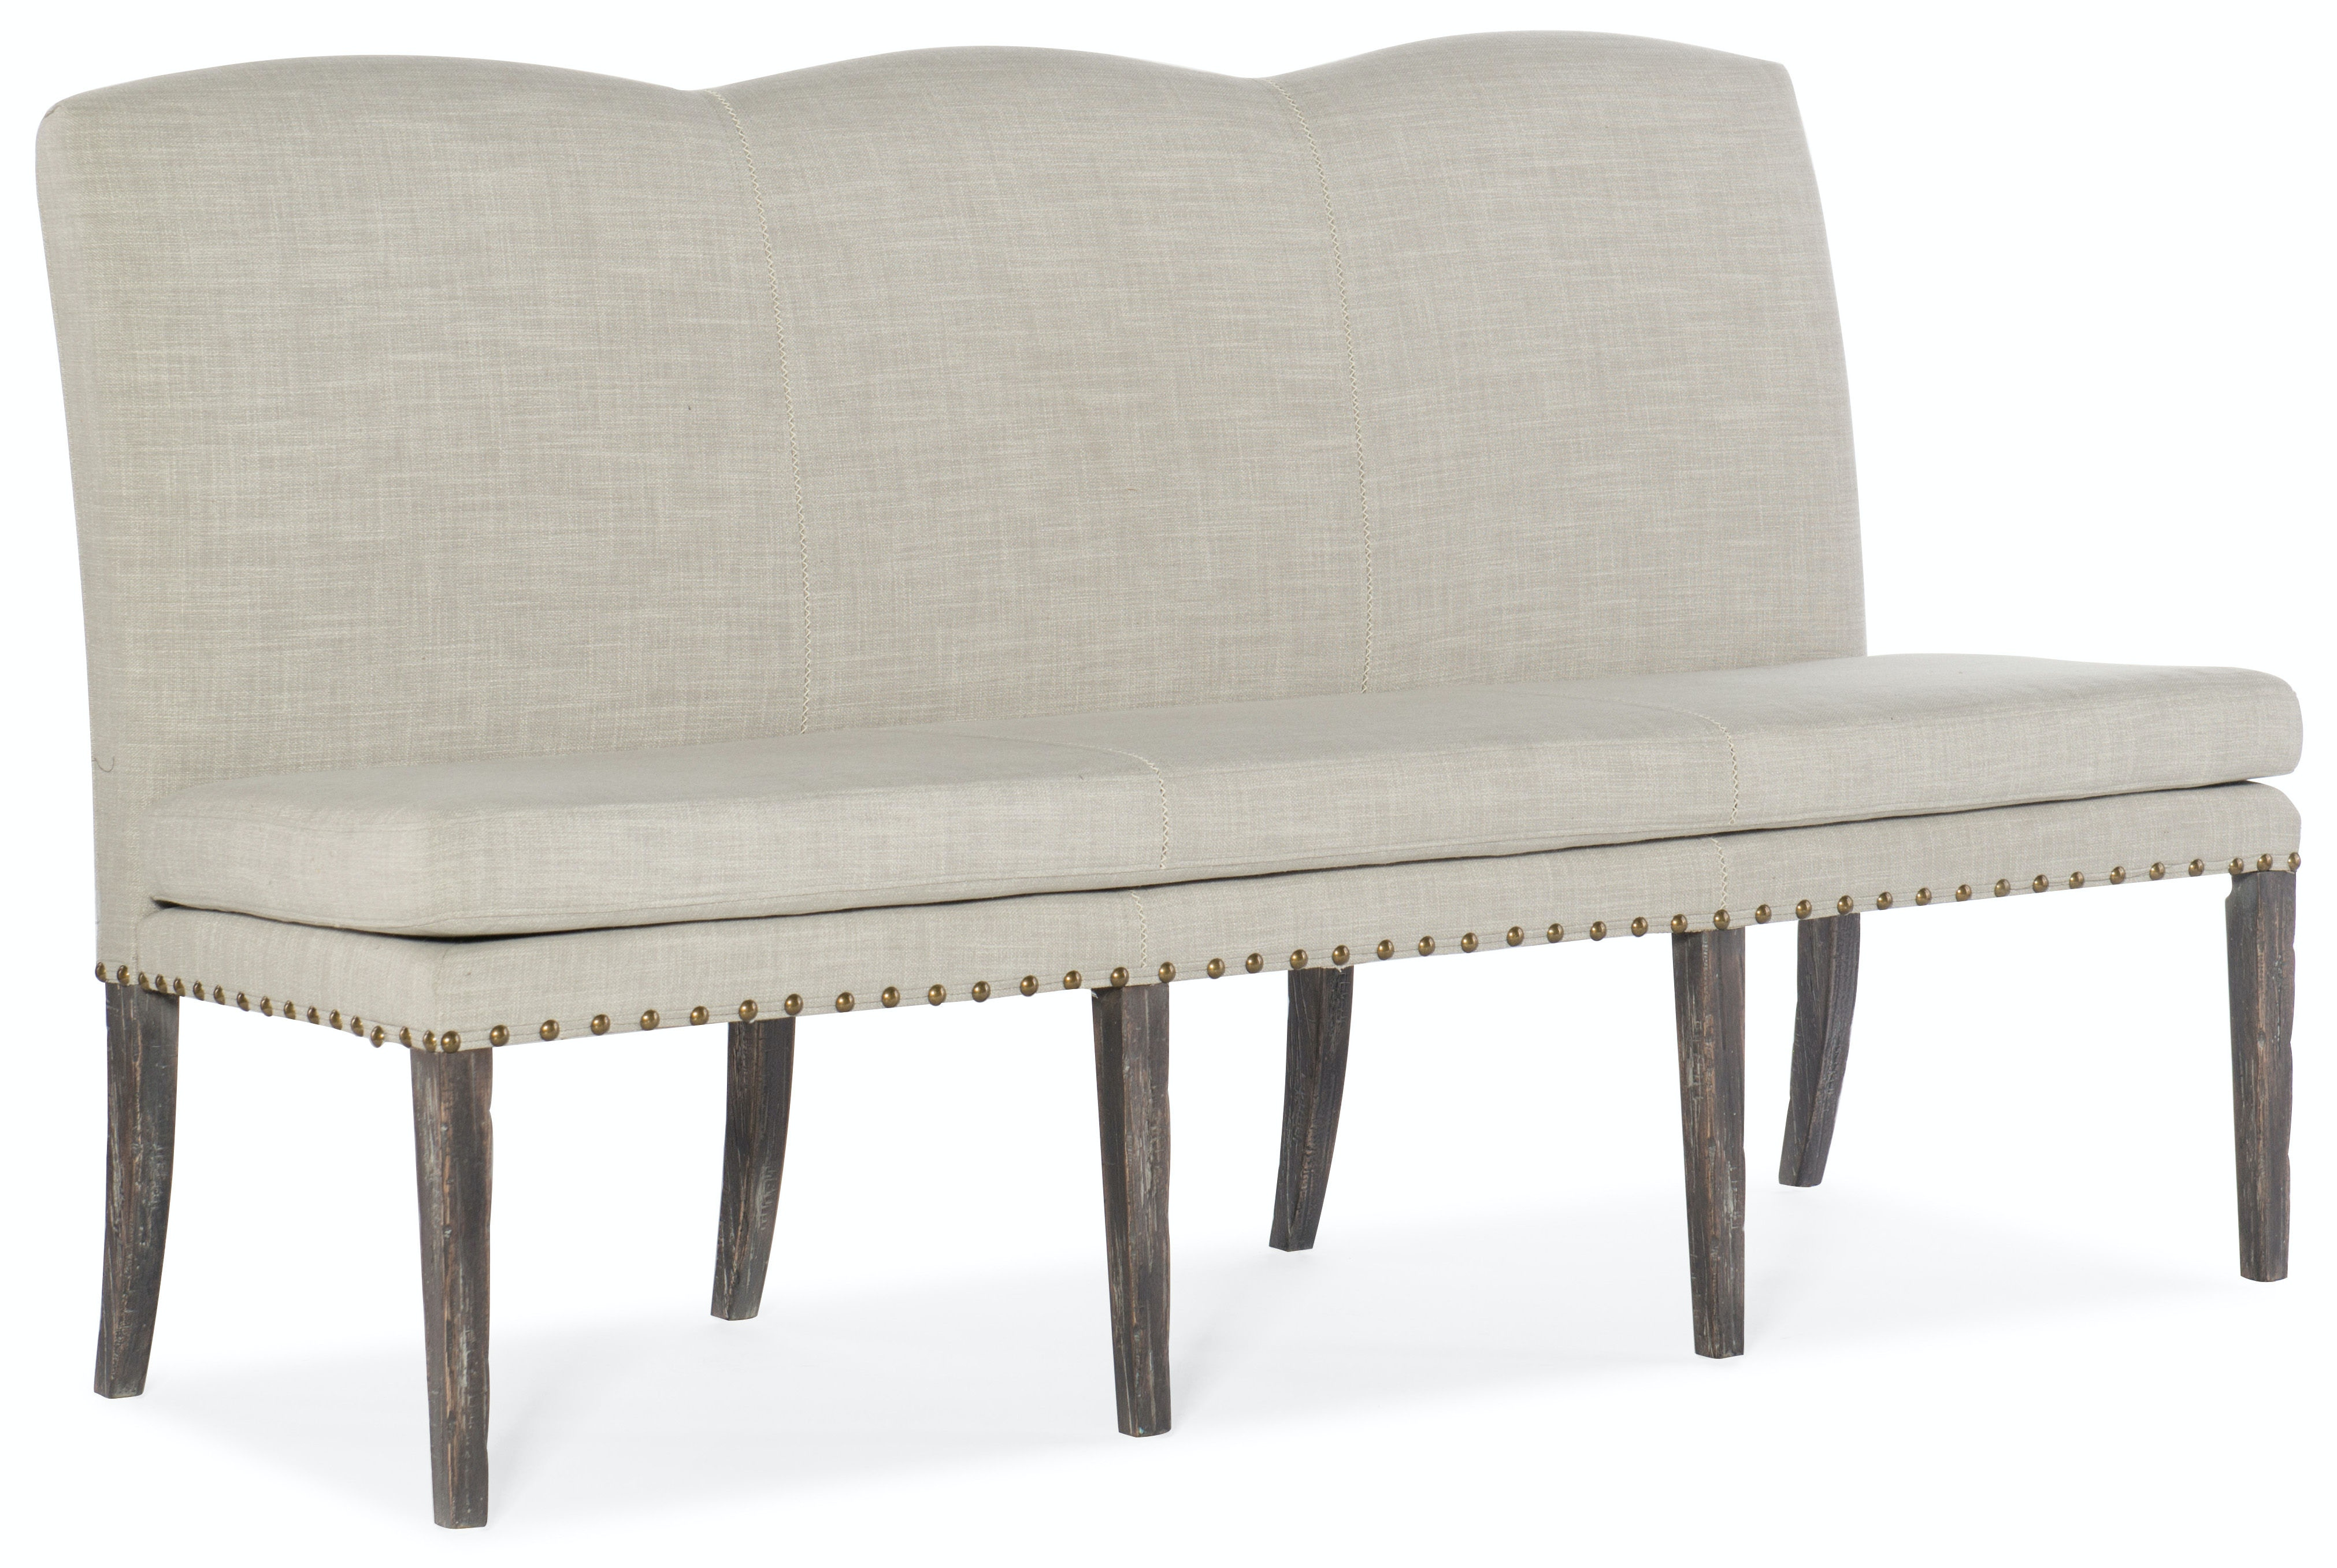 Beaumont Upholstered Dining Bench 5751 75315 95